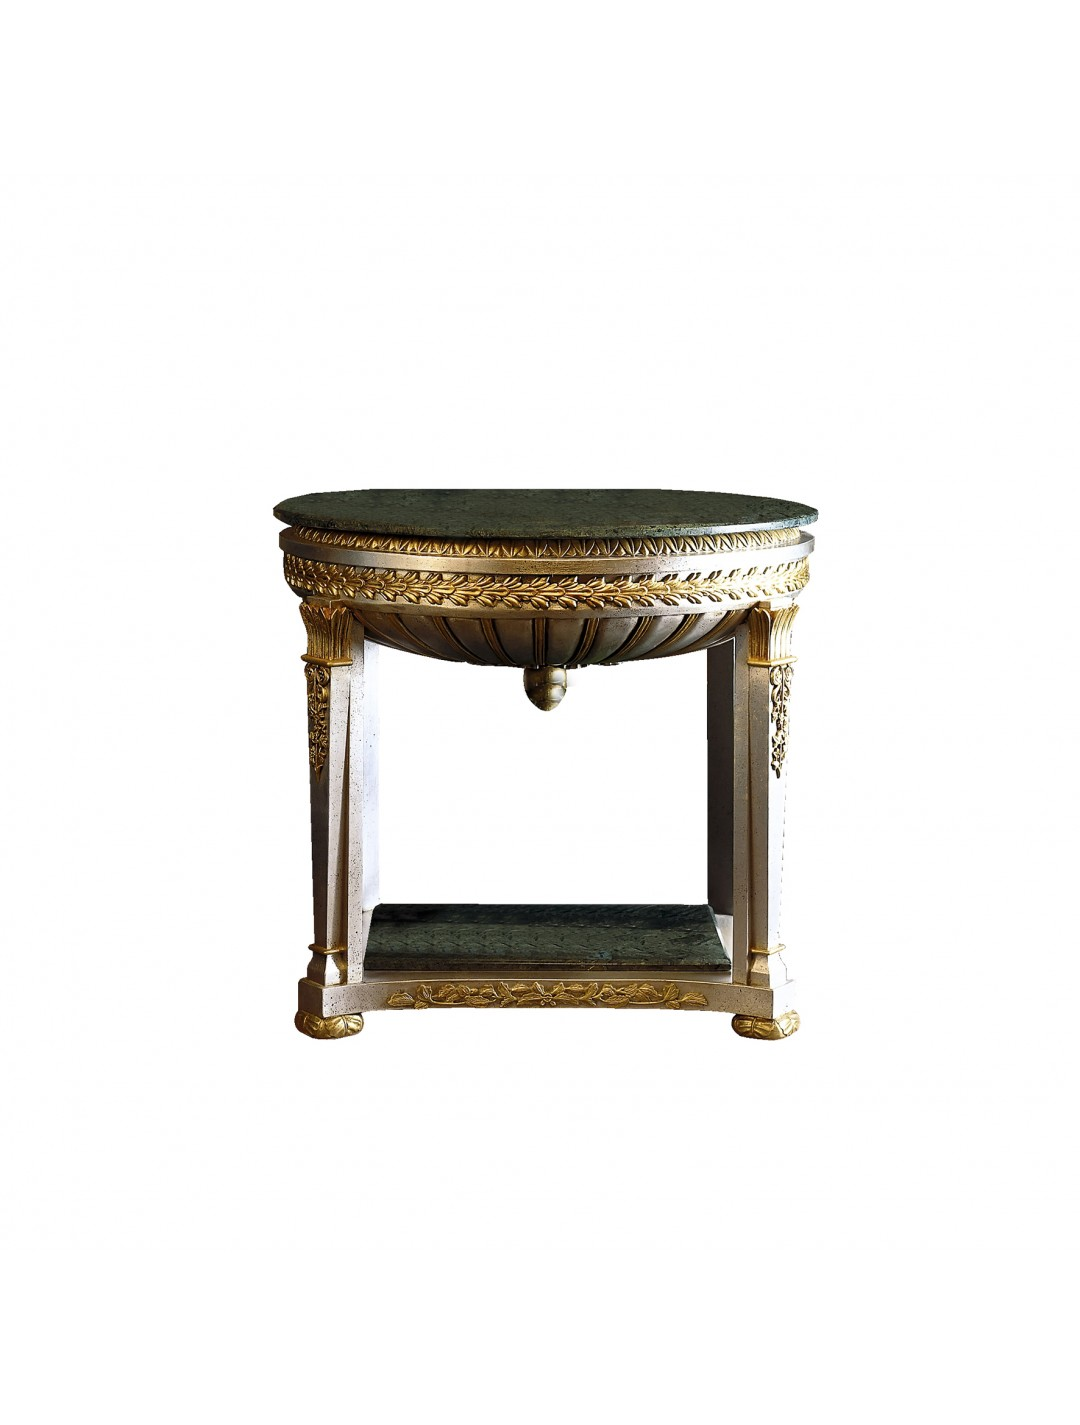 COPA PEDESTAL TABLE,98D